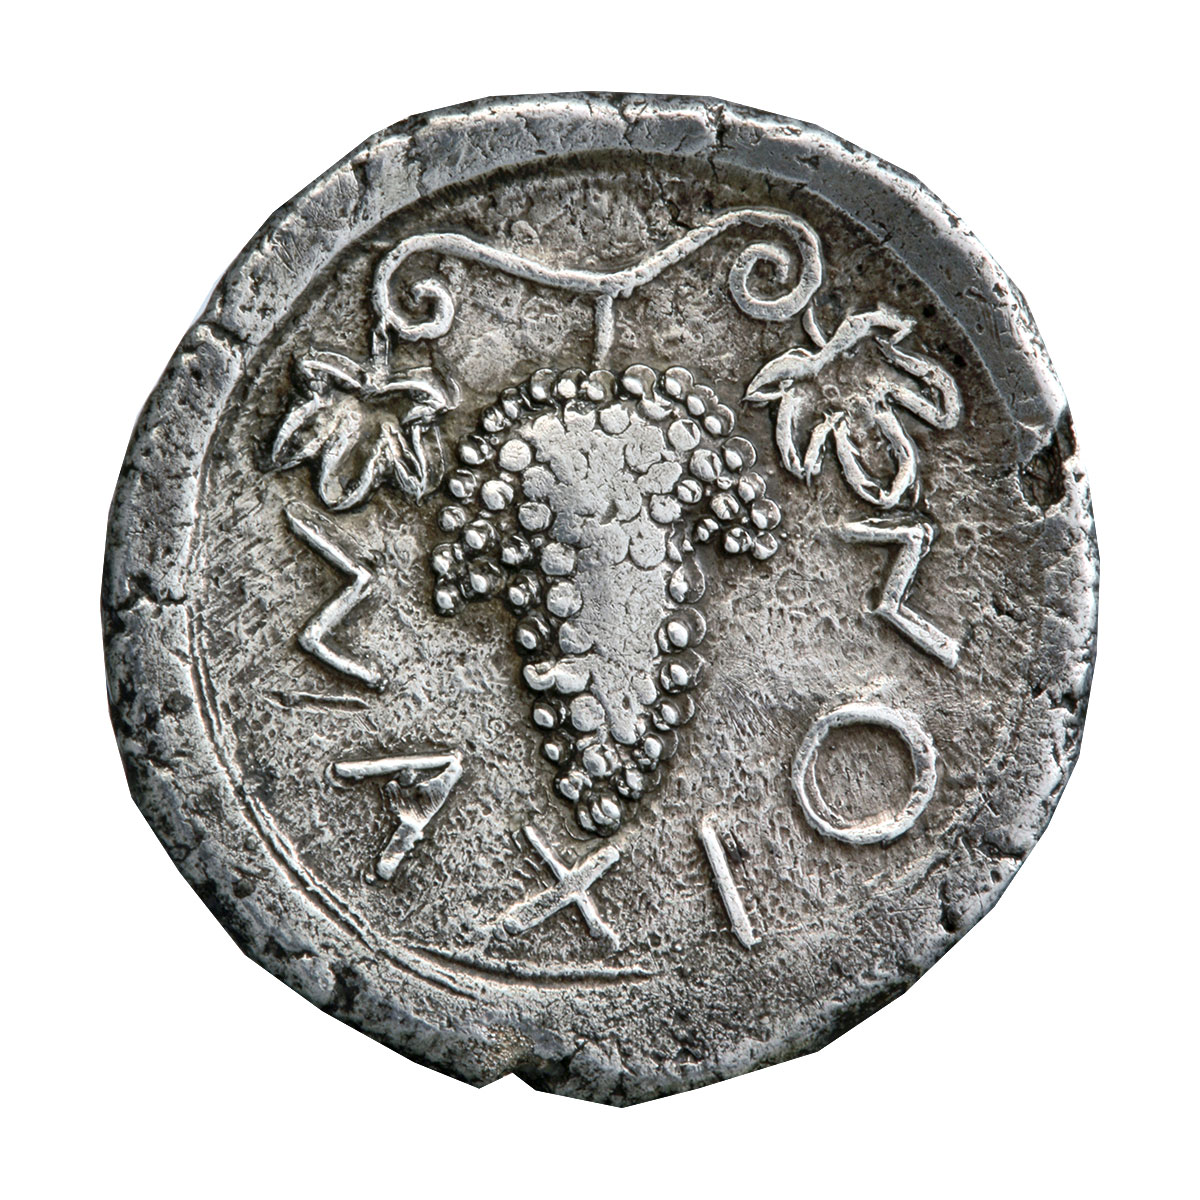 Silver drachm of Naxos, Sicily; depicted is a bunch of grapes encircled by the inscription ΝΑΧΙΟΝ. 525 – 500 BC © Athens, Alpha Bank Numismatic Collection (photo by P. Magoulas)